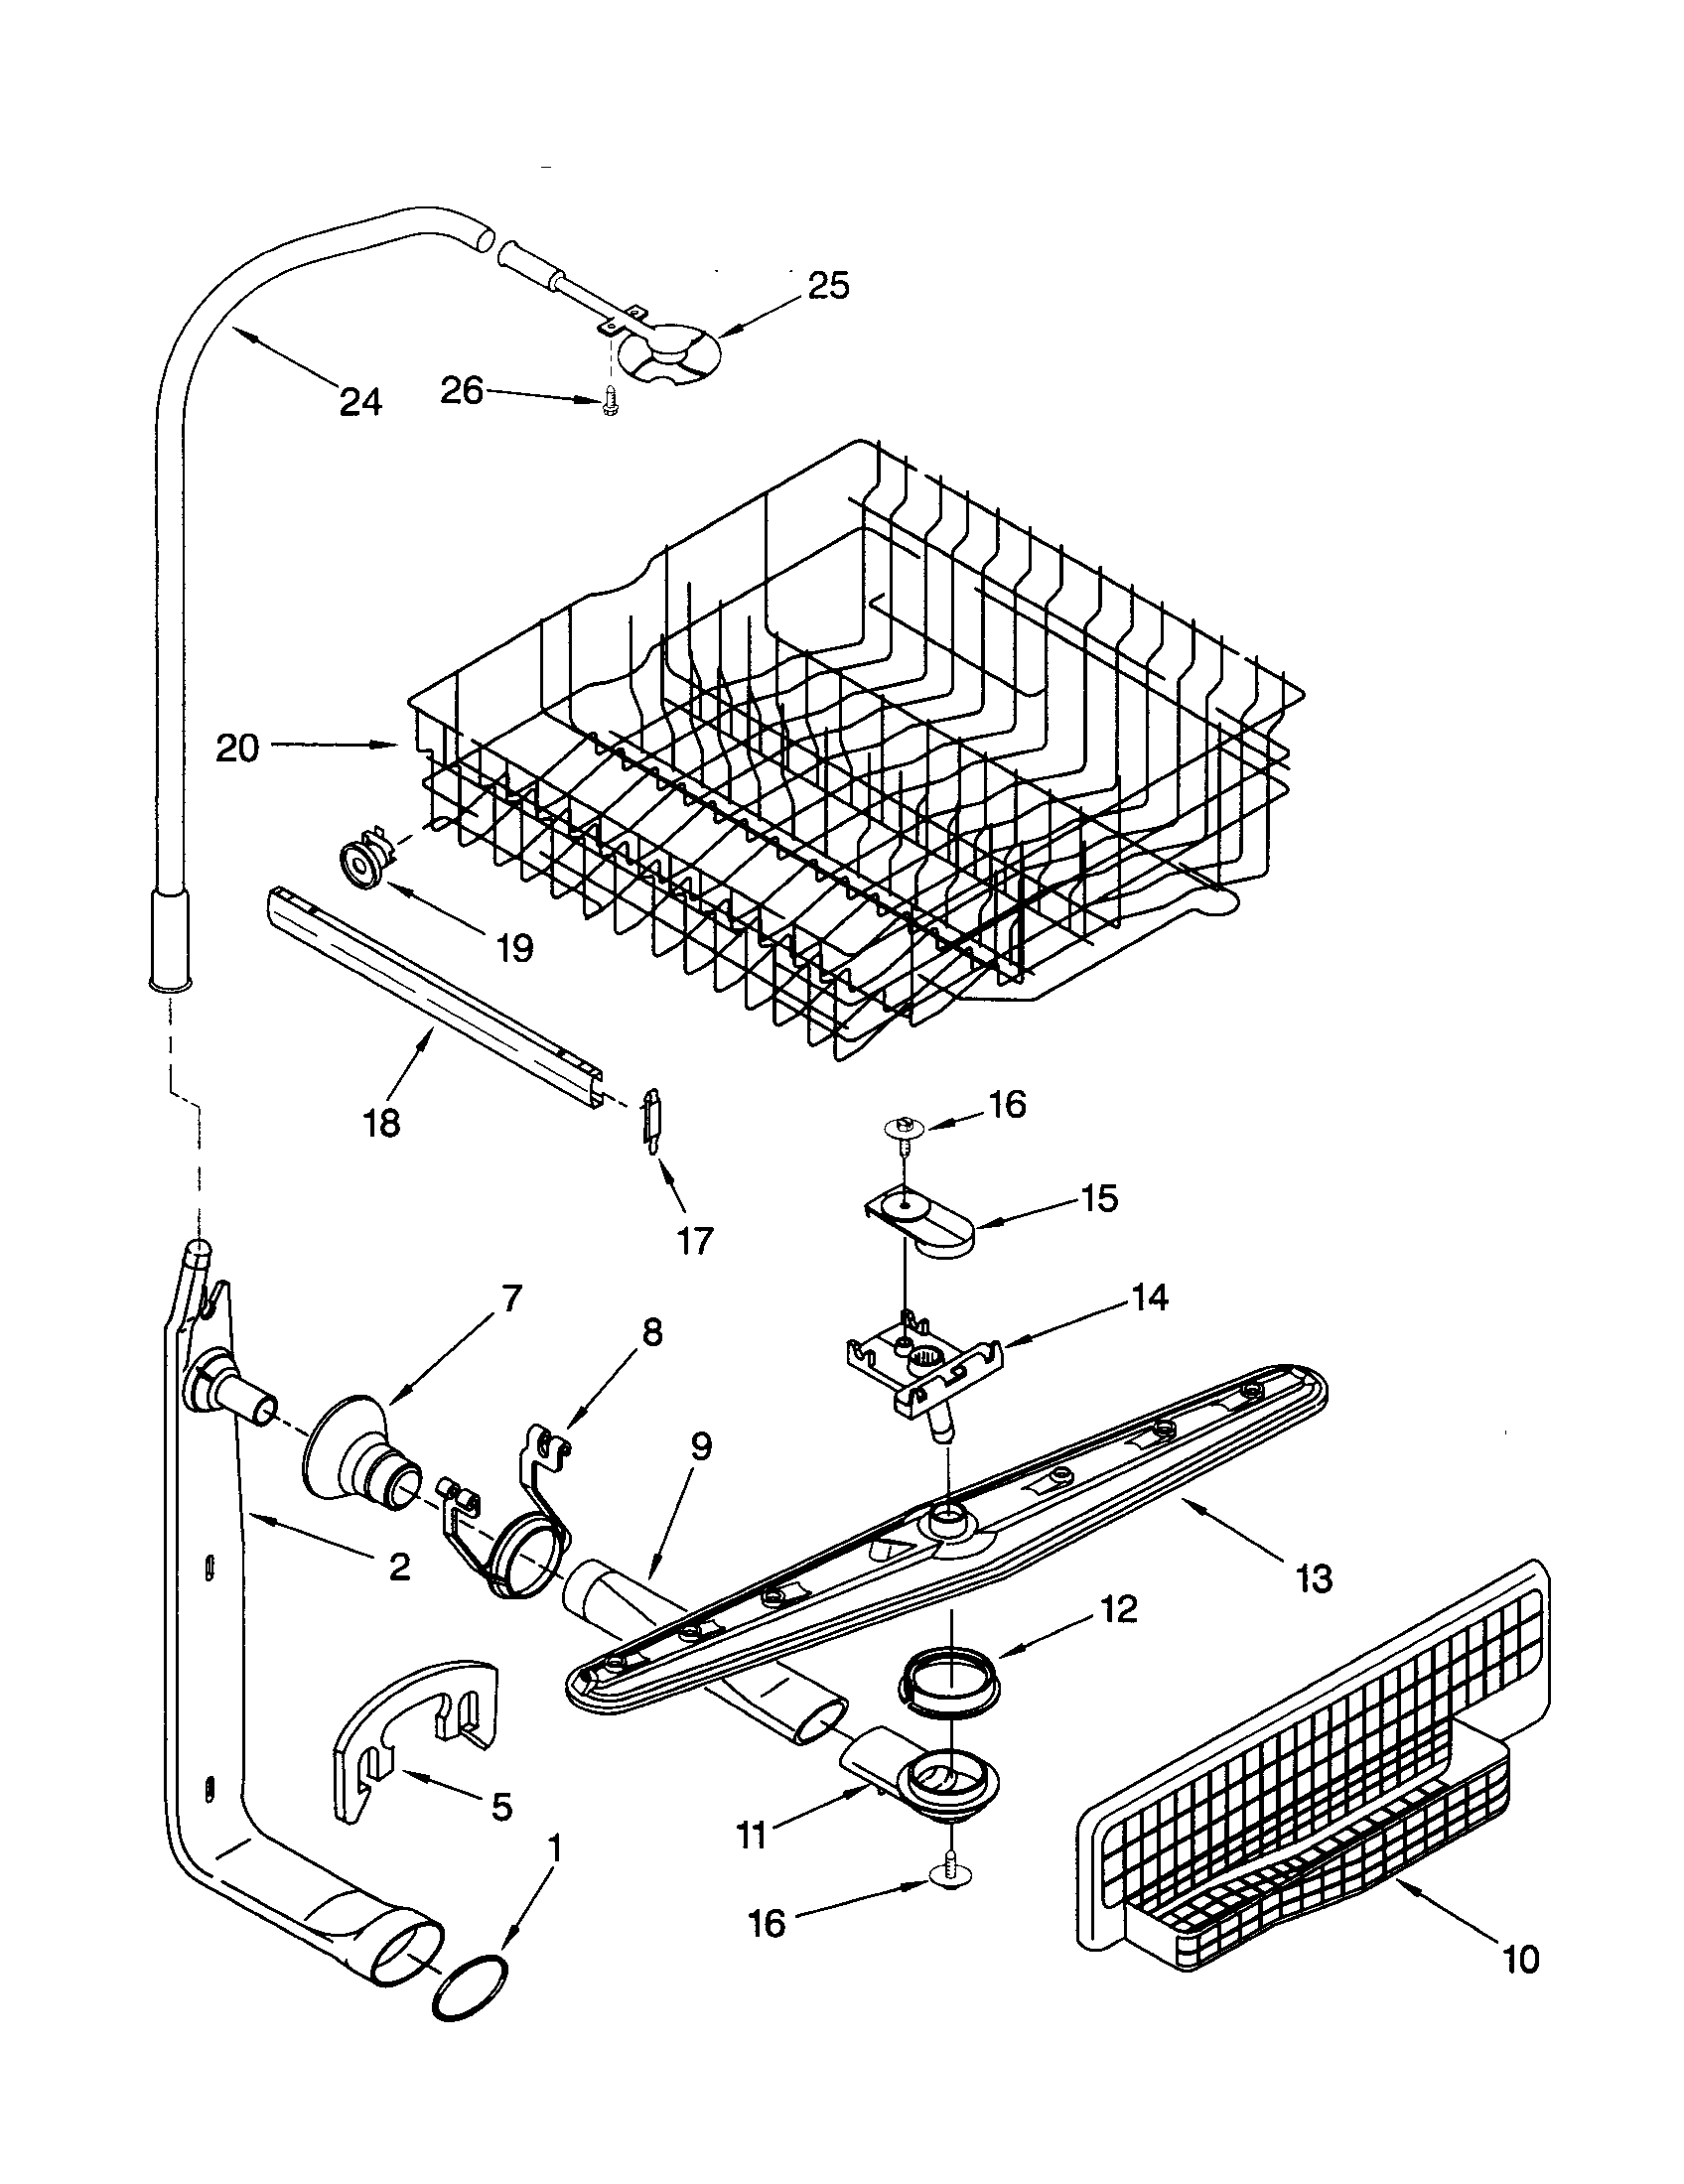 hight resolution of kenmore elite dishwasher parts diagram together with kenmore kenmore elite dryer wiring